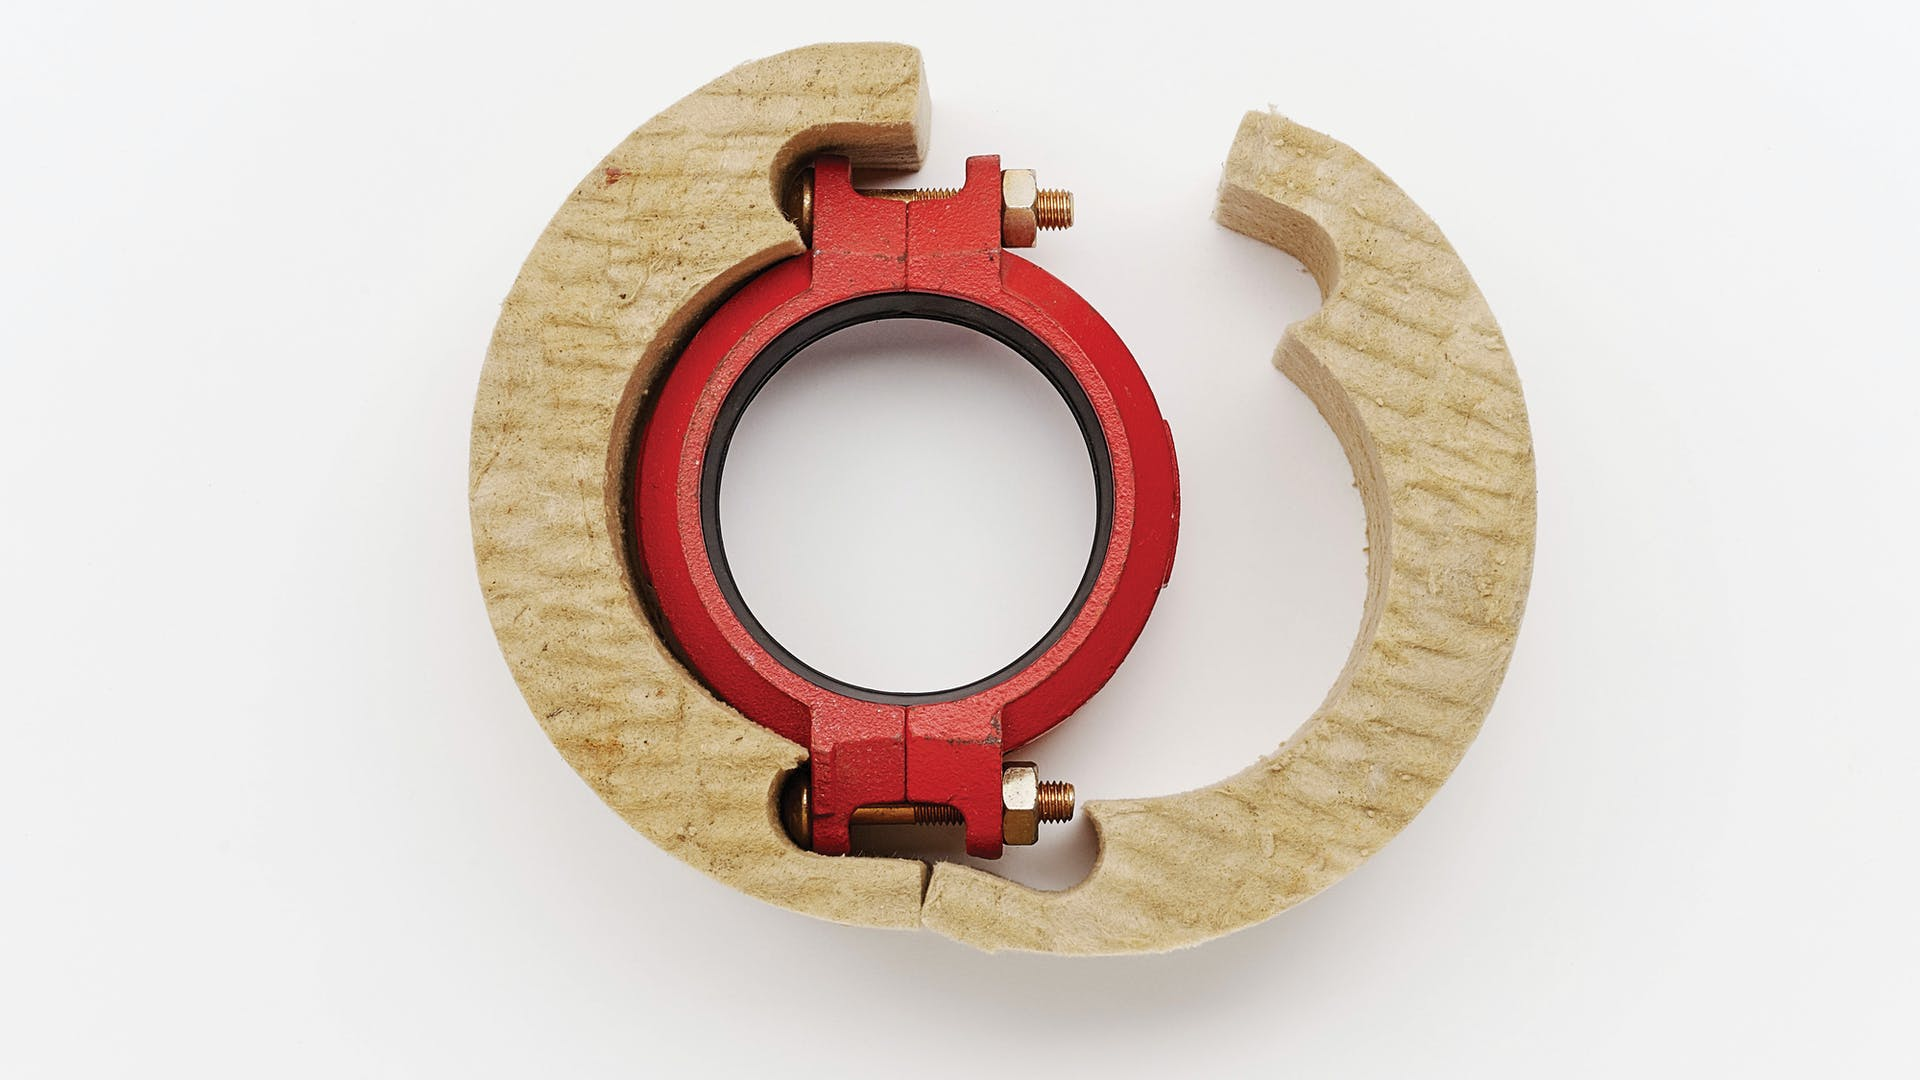 product, product page, hvac, germany, conlit ps 150 sprinkler cap